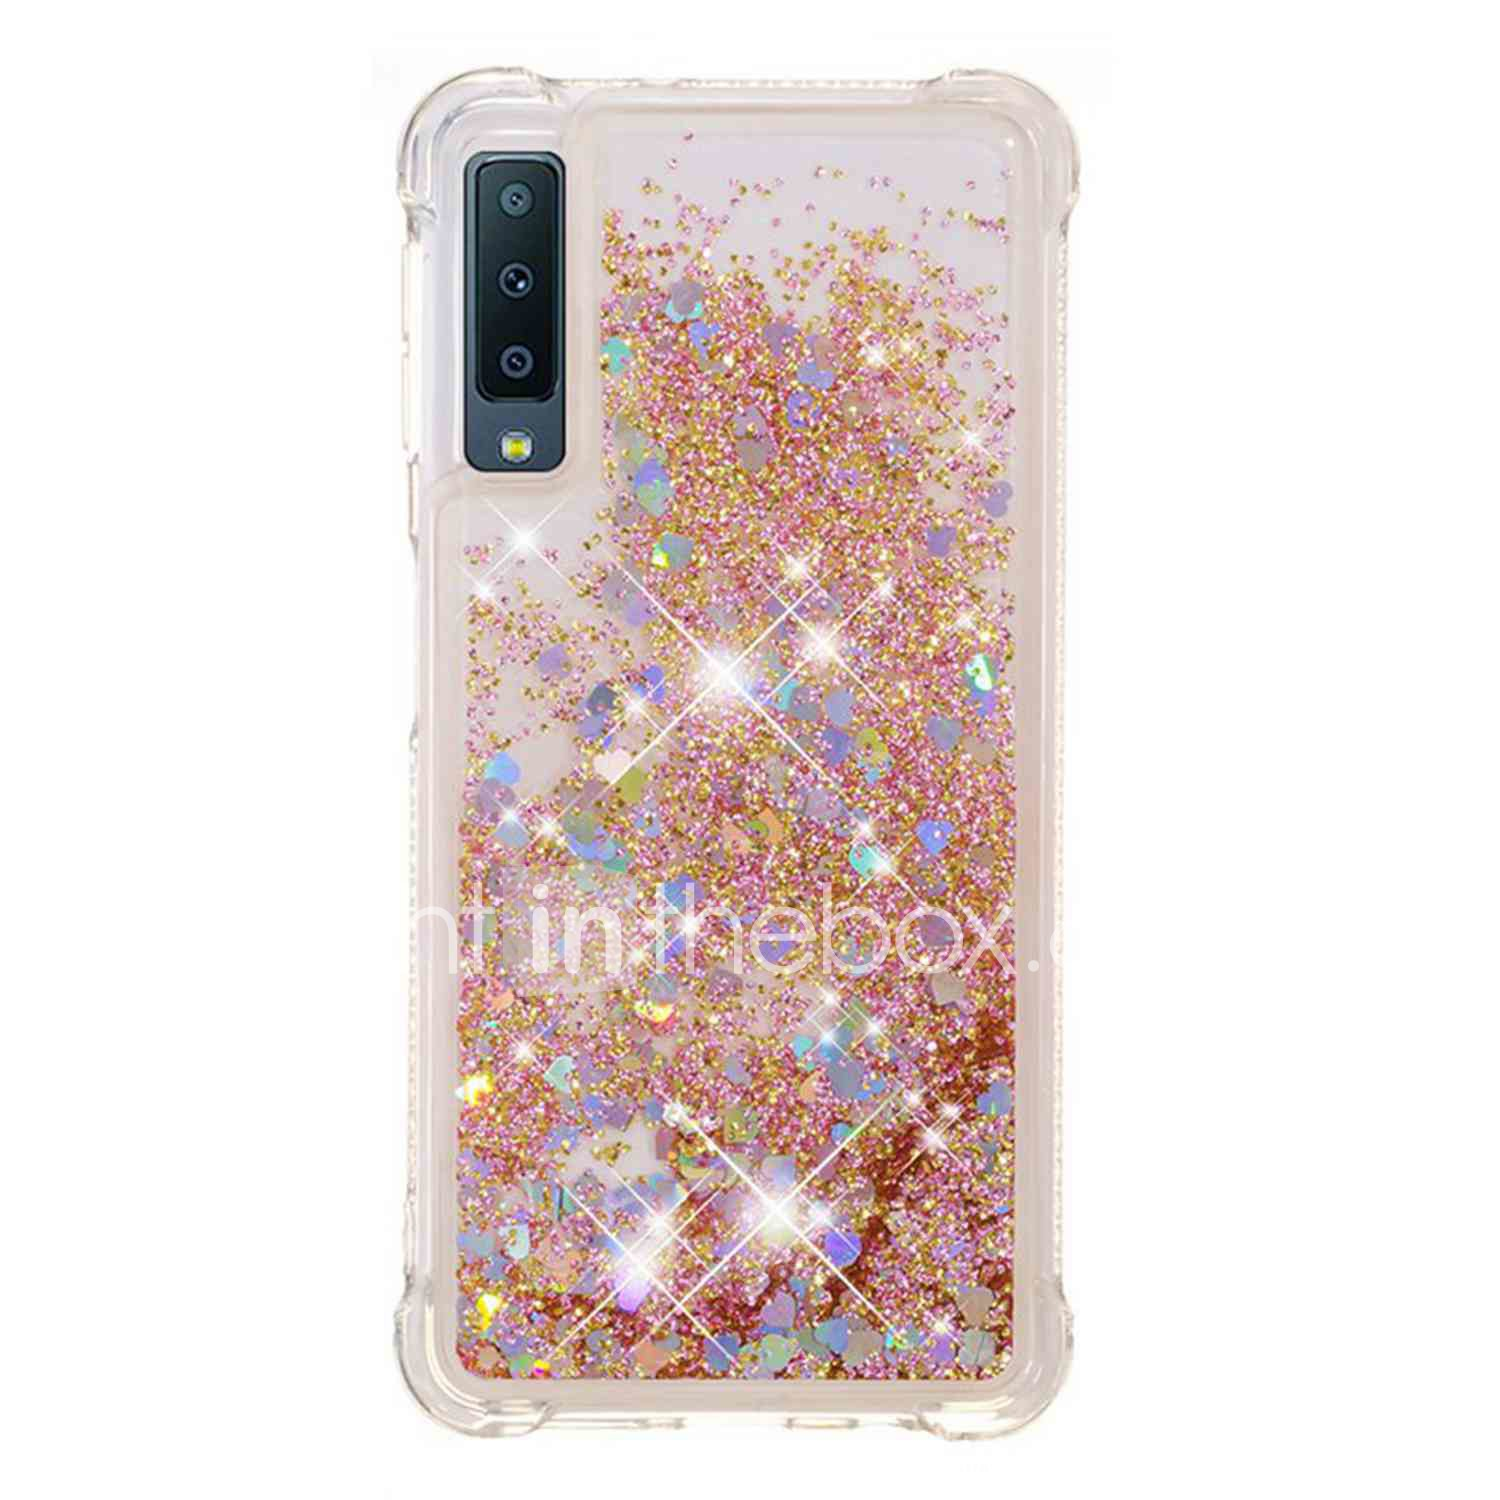 74d1b4dd647e98 Case For Samsung Galaxy A8 Plus 2018 / A7(2018) Shockproof / Flowing Liquid  / Transparent Back Cover Glitter Shine Soft TPU for A6 (2018) / A6+ (2018)  ...